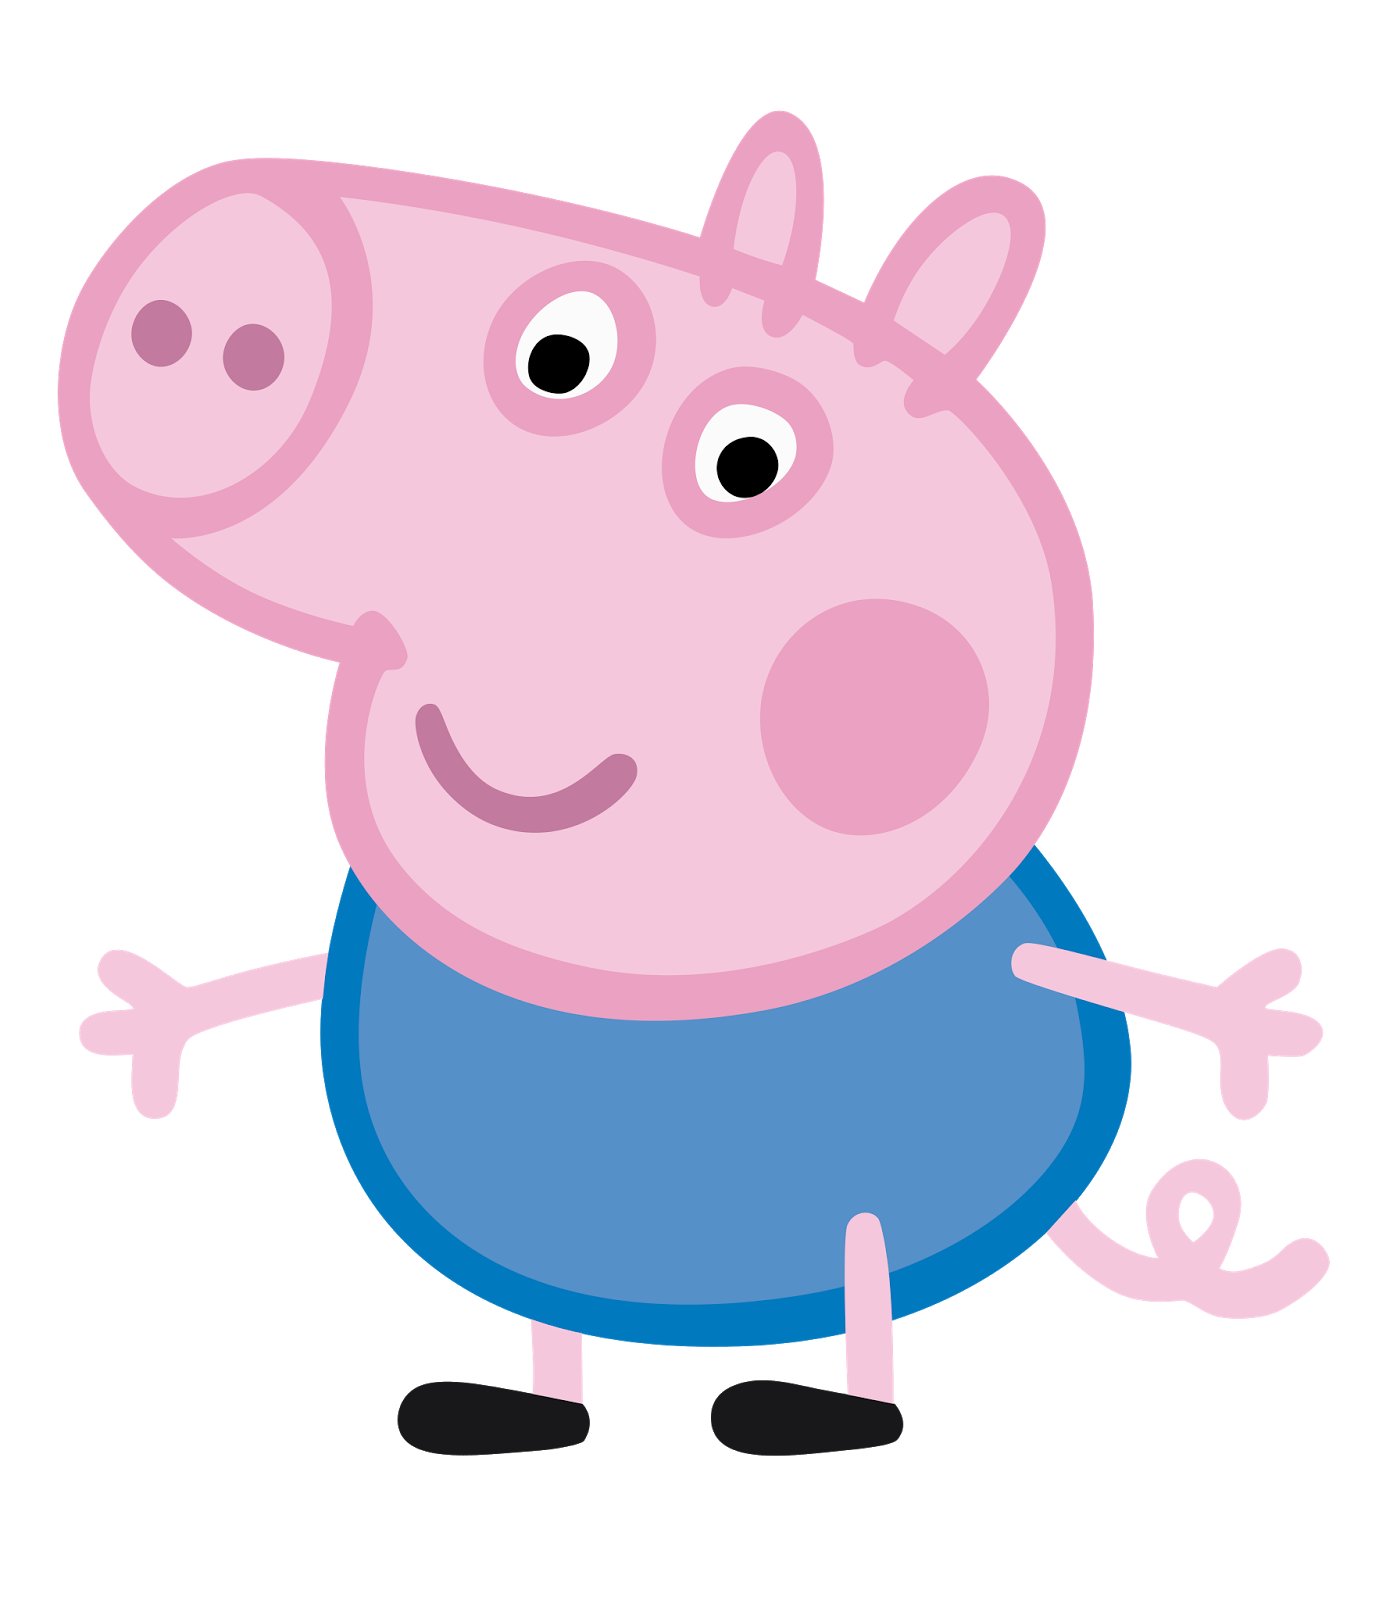 Peppa pig family png. George wikia fandom powered